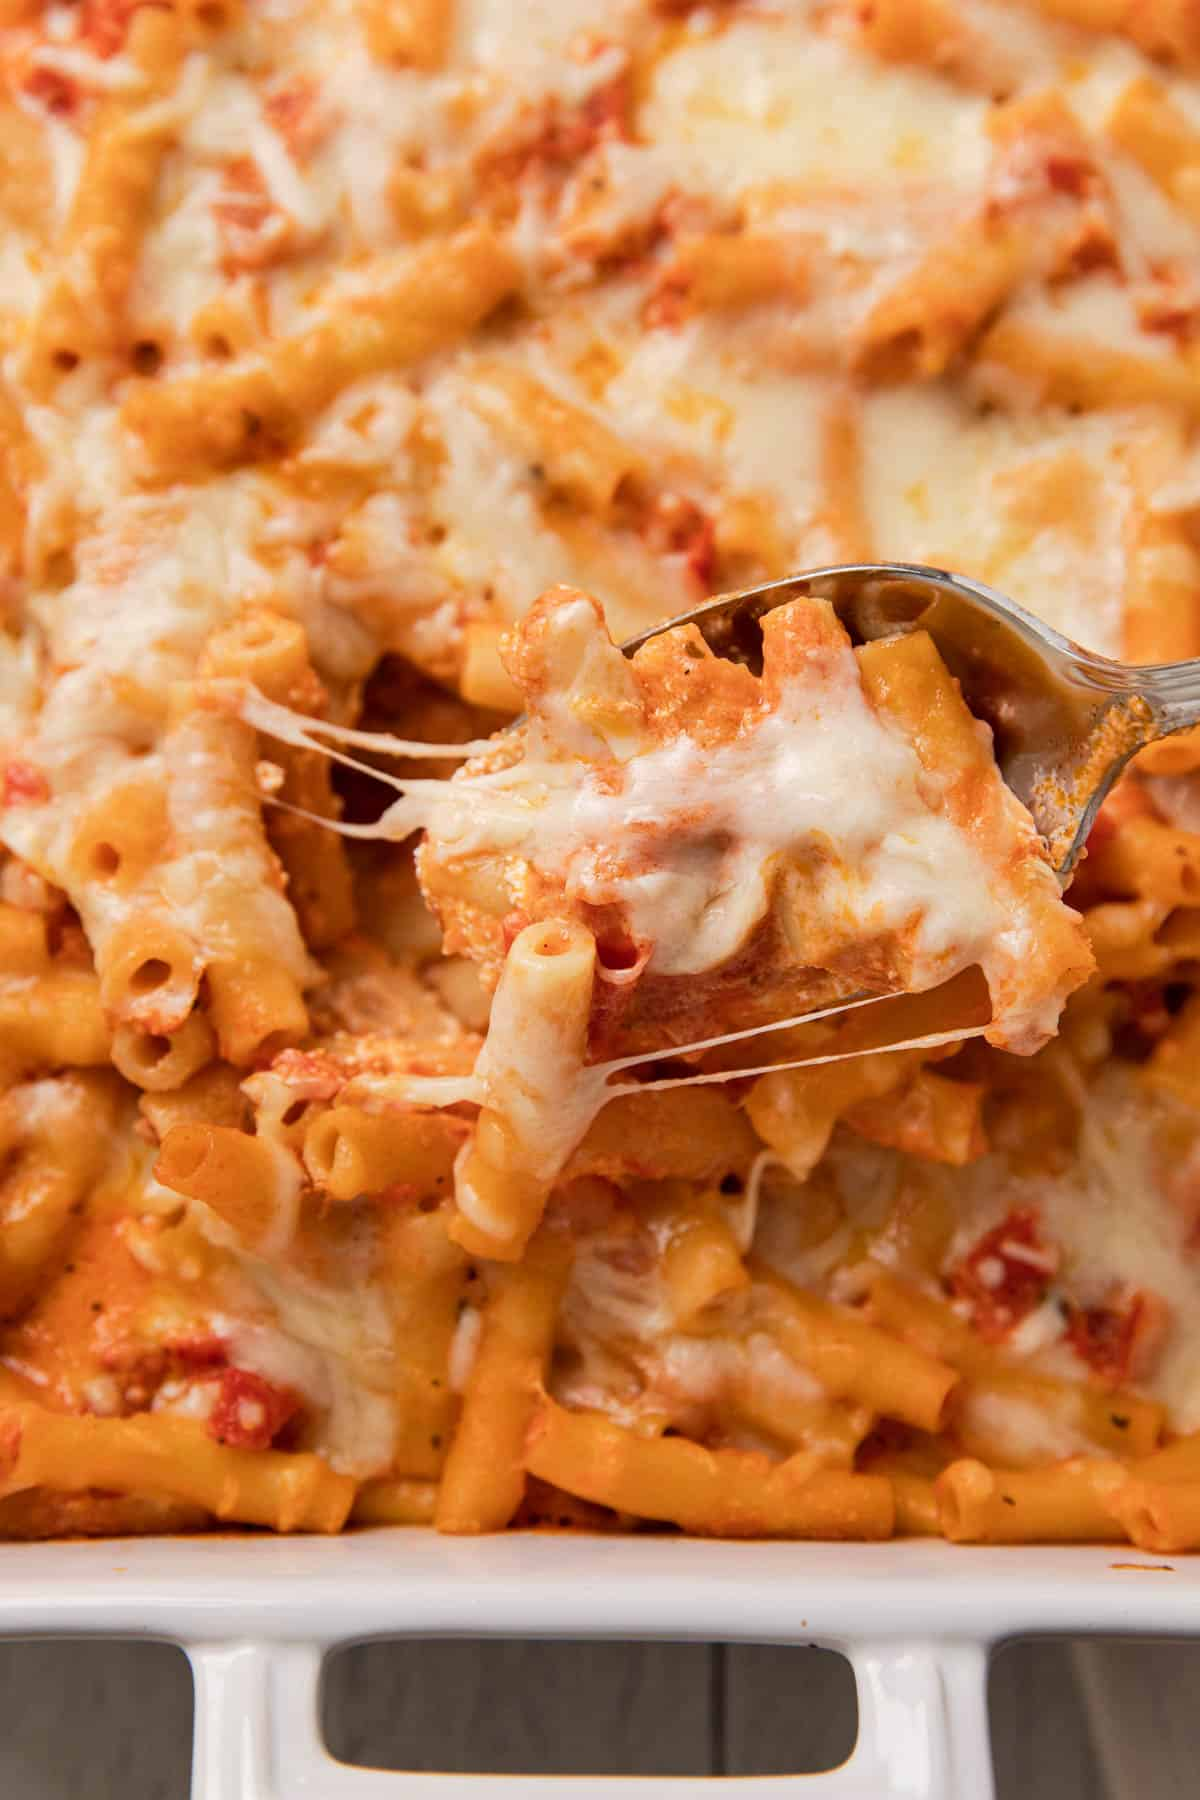 a casserole dish with a cheesy pasta dish being scooped out